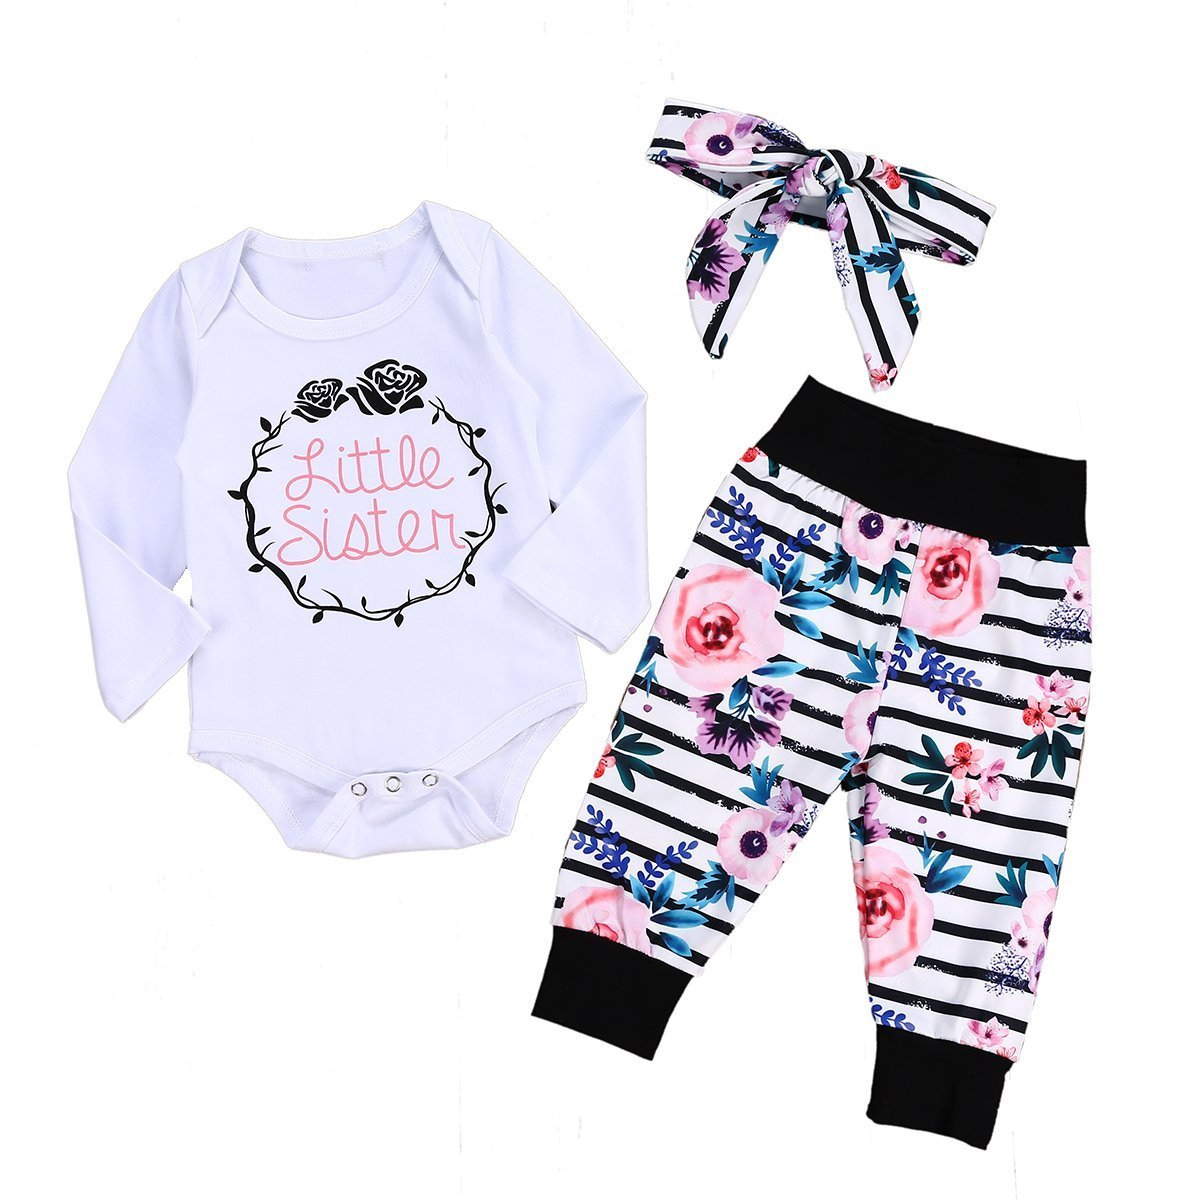 Toddler Baby Girl Summer Clothes Little Sister Newborn Outfit Bodysuit Tops + Floral Pants with Headband Infant Pant Sets (0-3 Months, Thinks Giving)